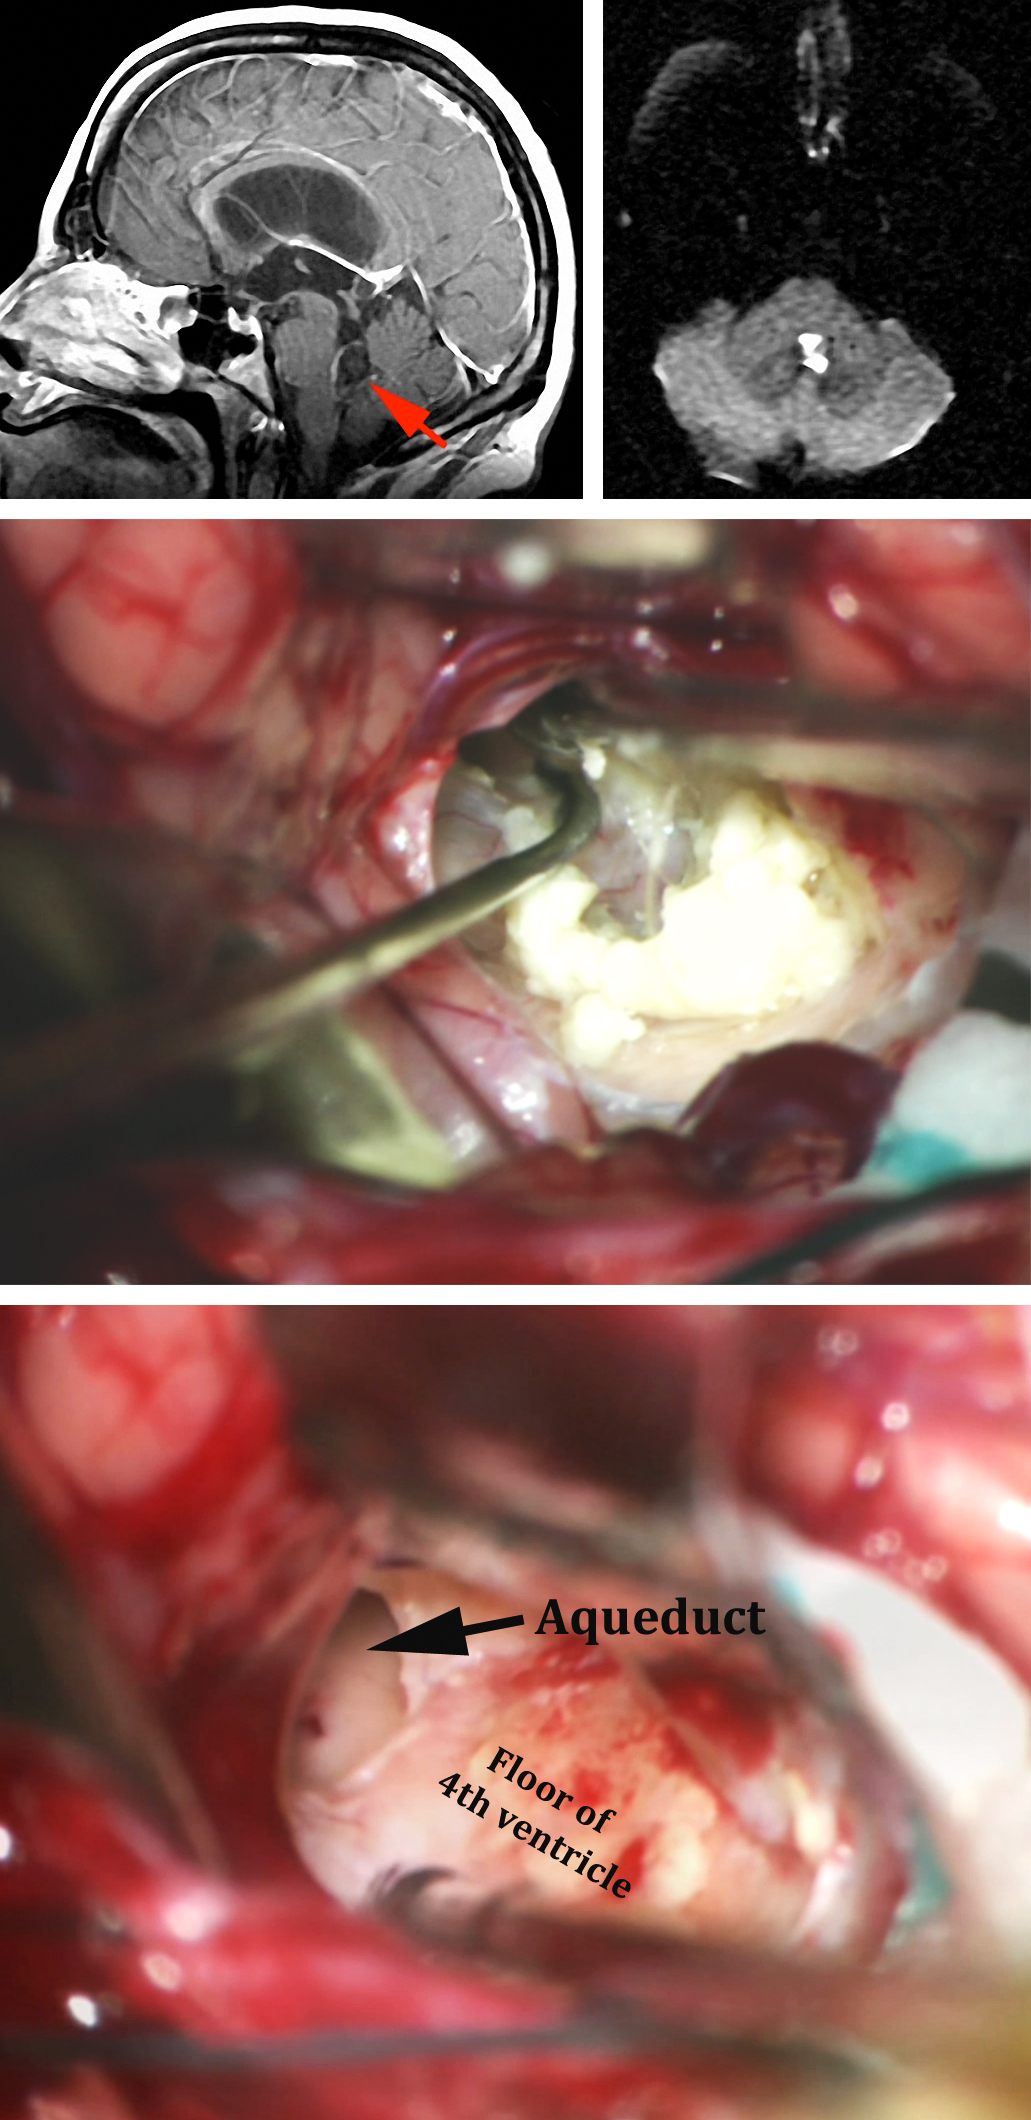 Figure 13: The use of the telovelar approach for removal of a fourth ventricular dermoid (top MRIs-red arrow) is shown (middle photo). Following removal of the tumor contents, the adherent capsule is left on the floor and the entry into the aqueduct is apparent (lower photo).